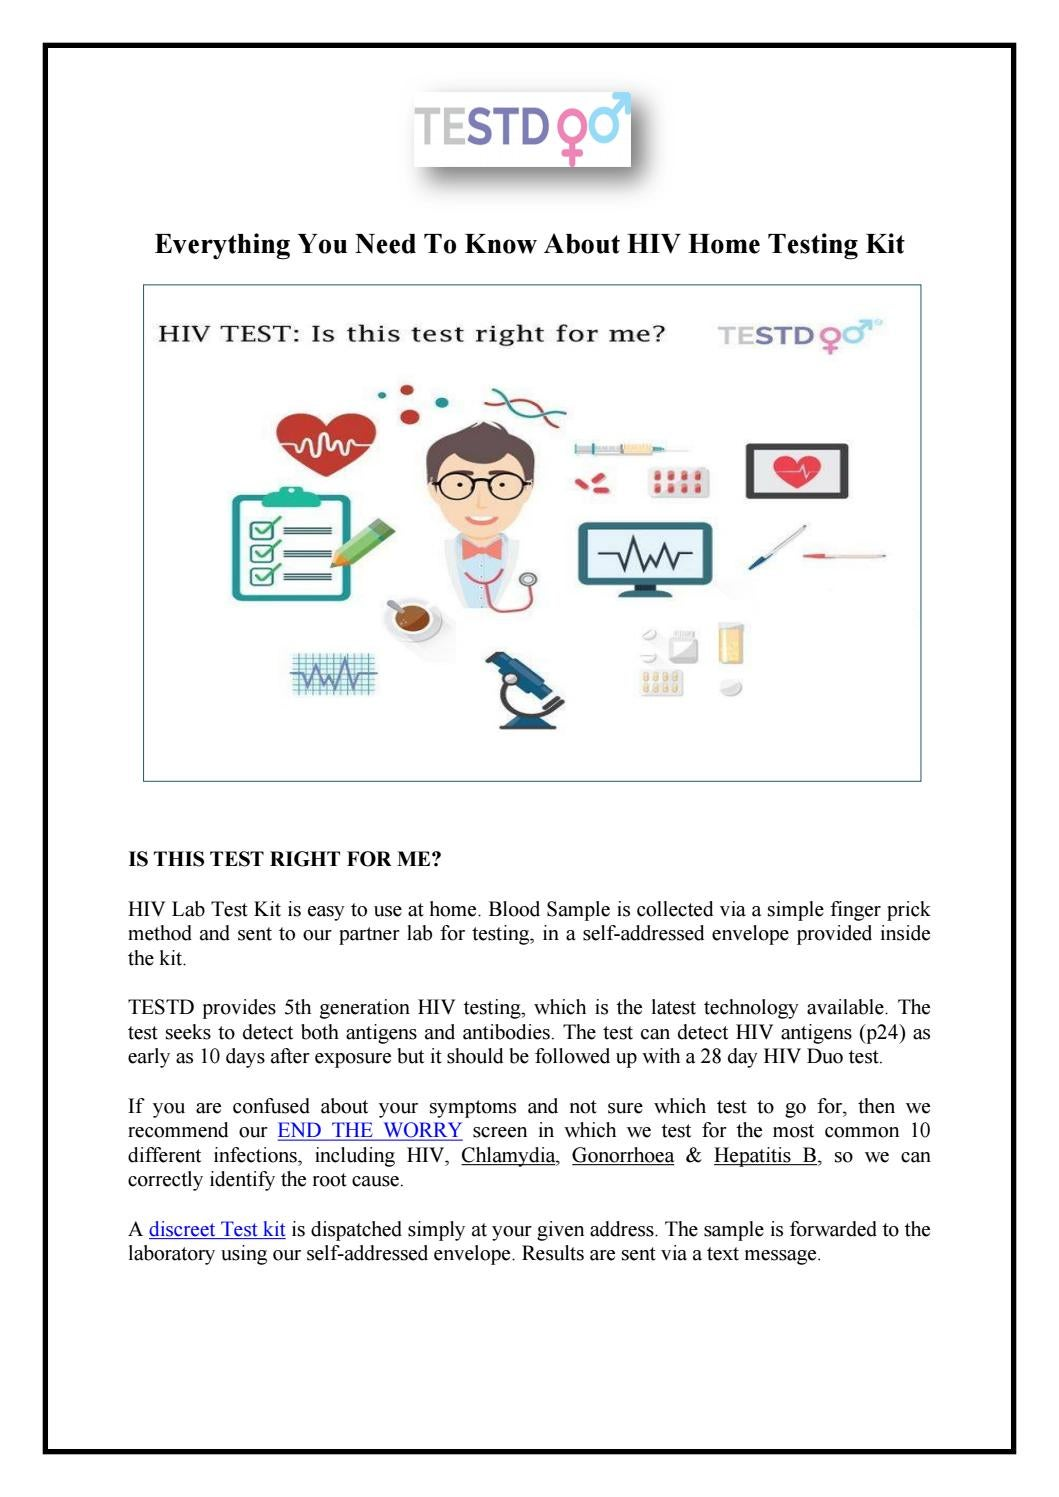 Everything You Need To Know About Hiv Home Testing Kit By